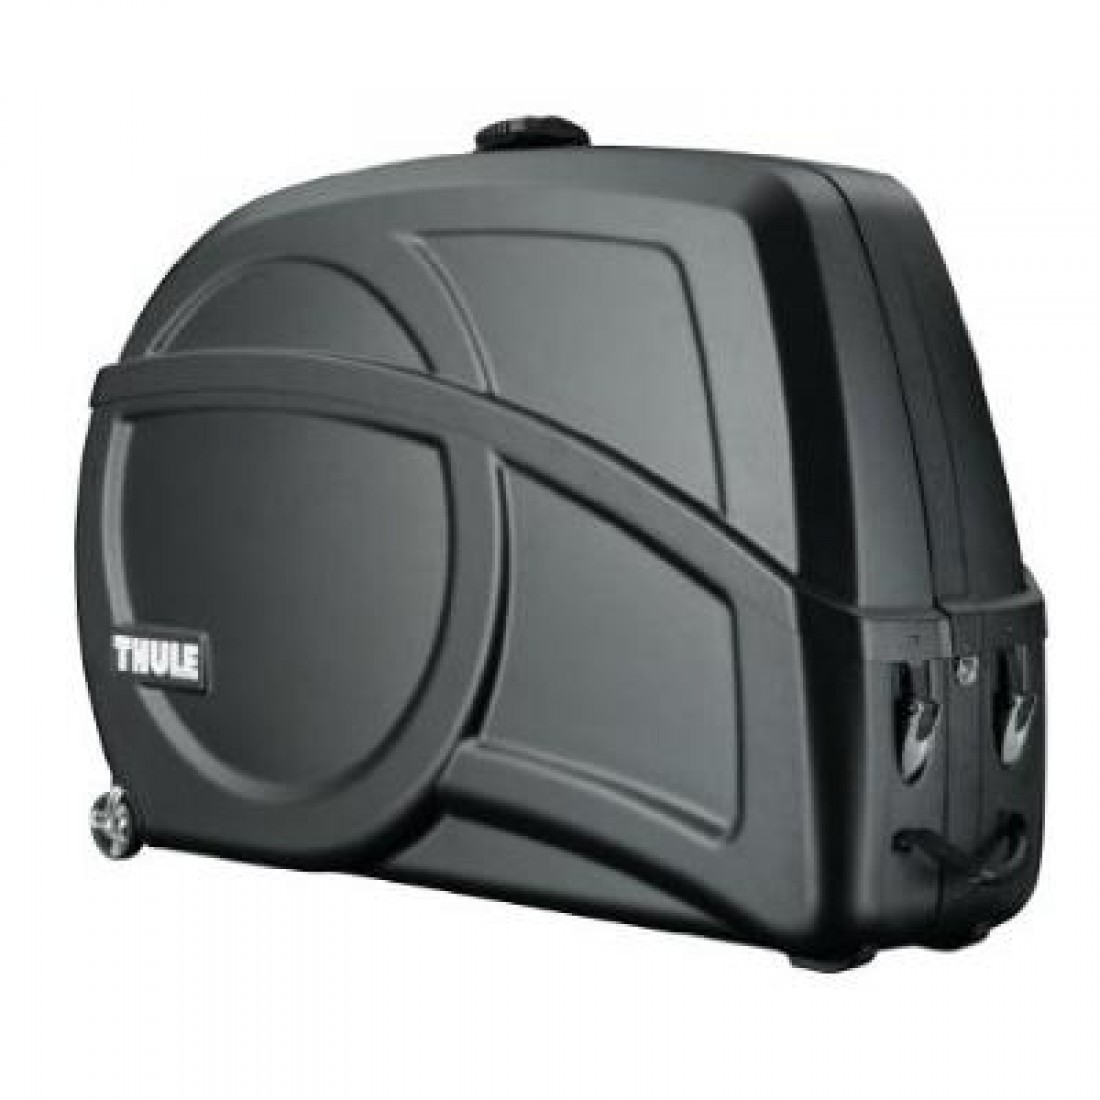 Thule Bicycle Case